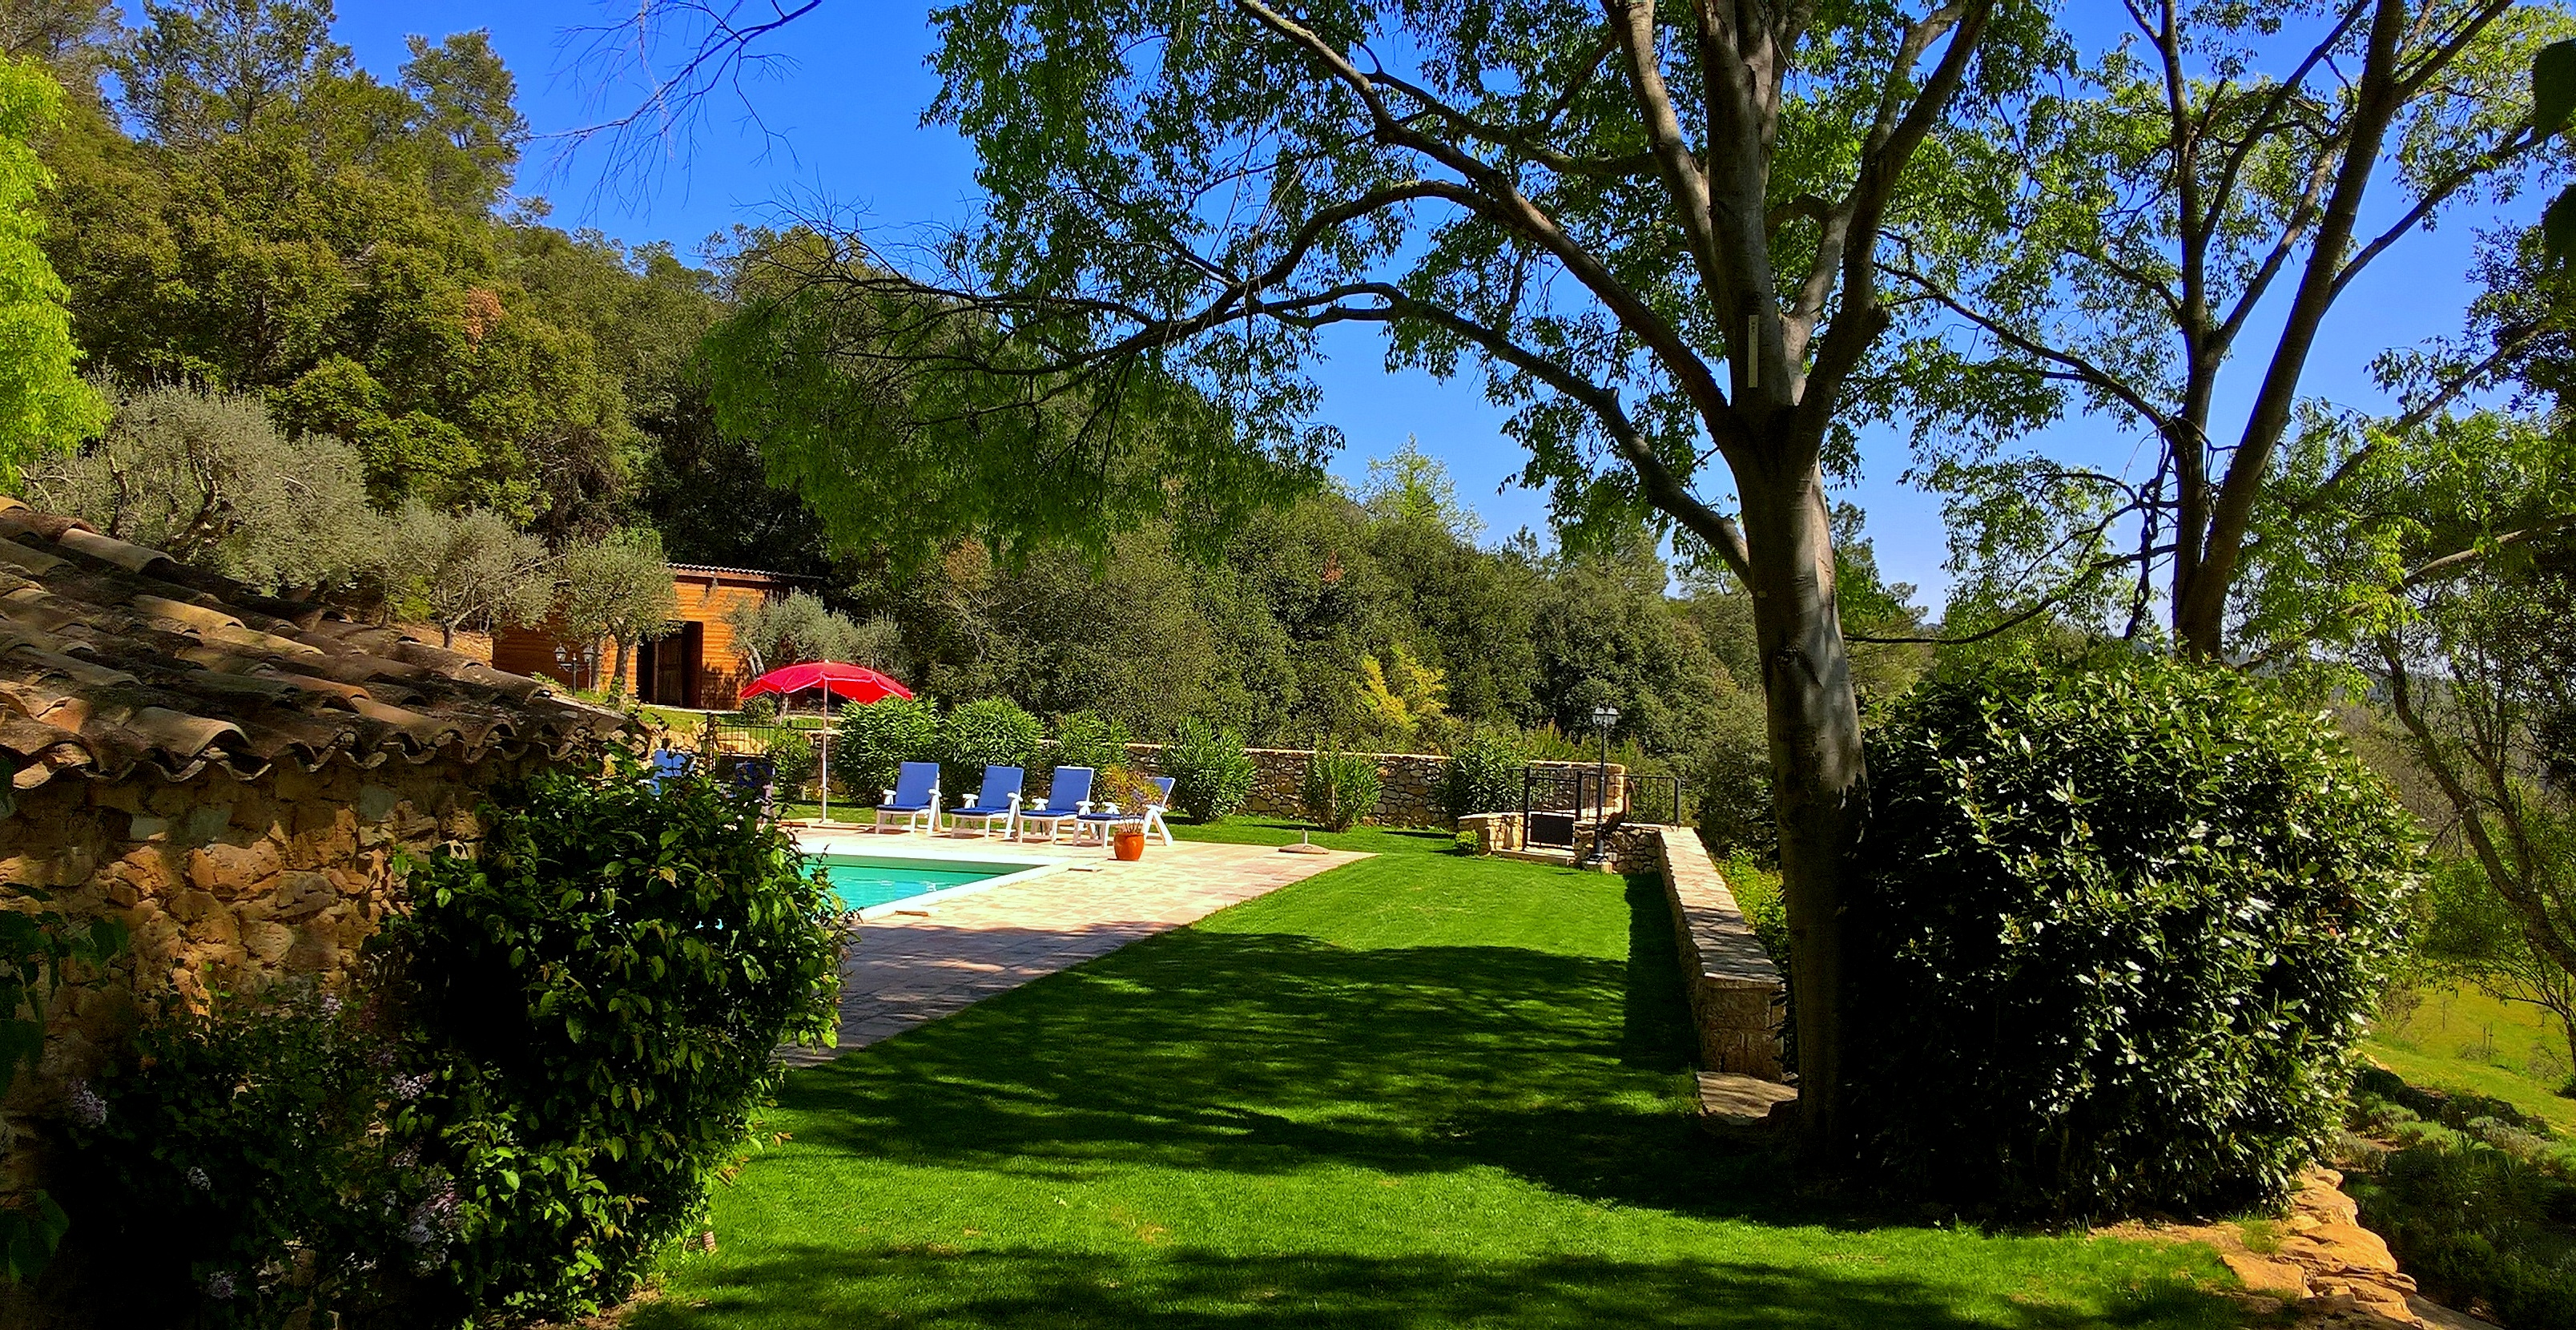 Pool with lush lawns